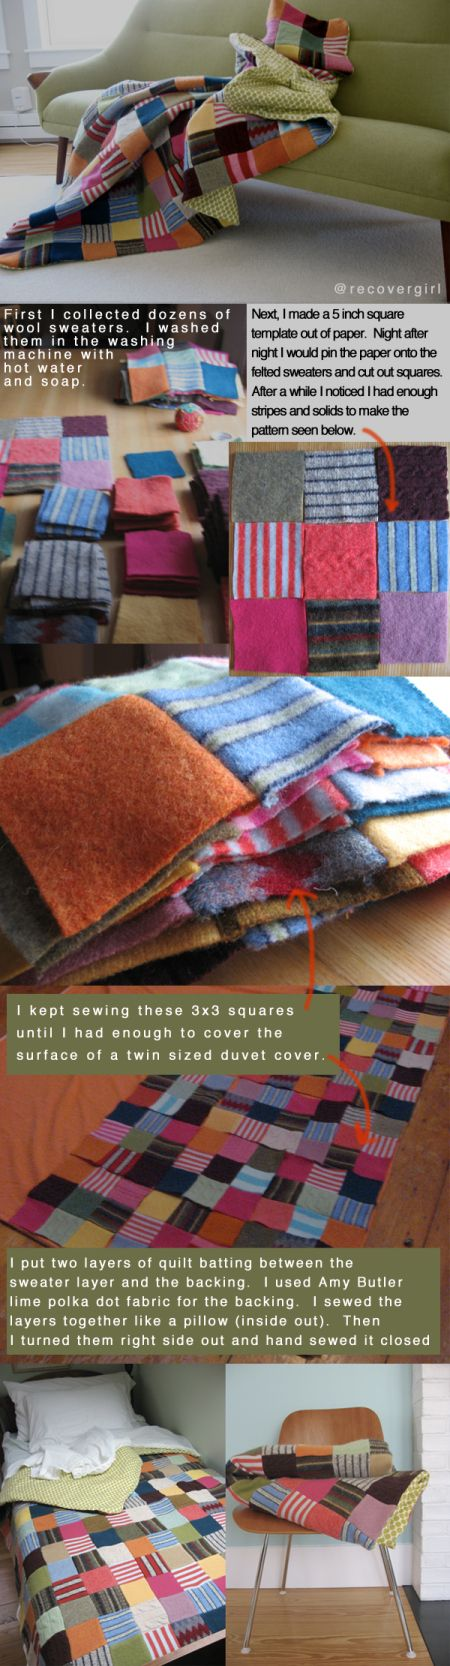 recovergirl-sweater-blanket-how-to felted sweater